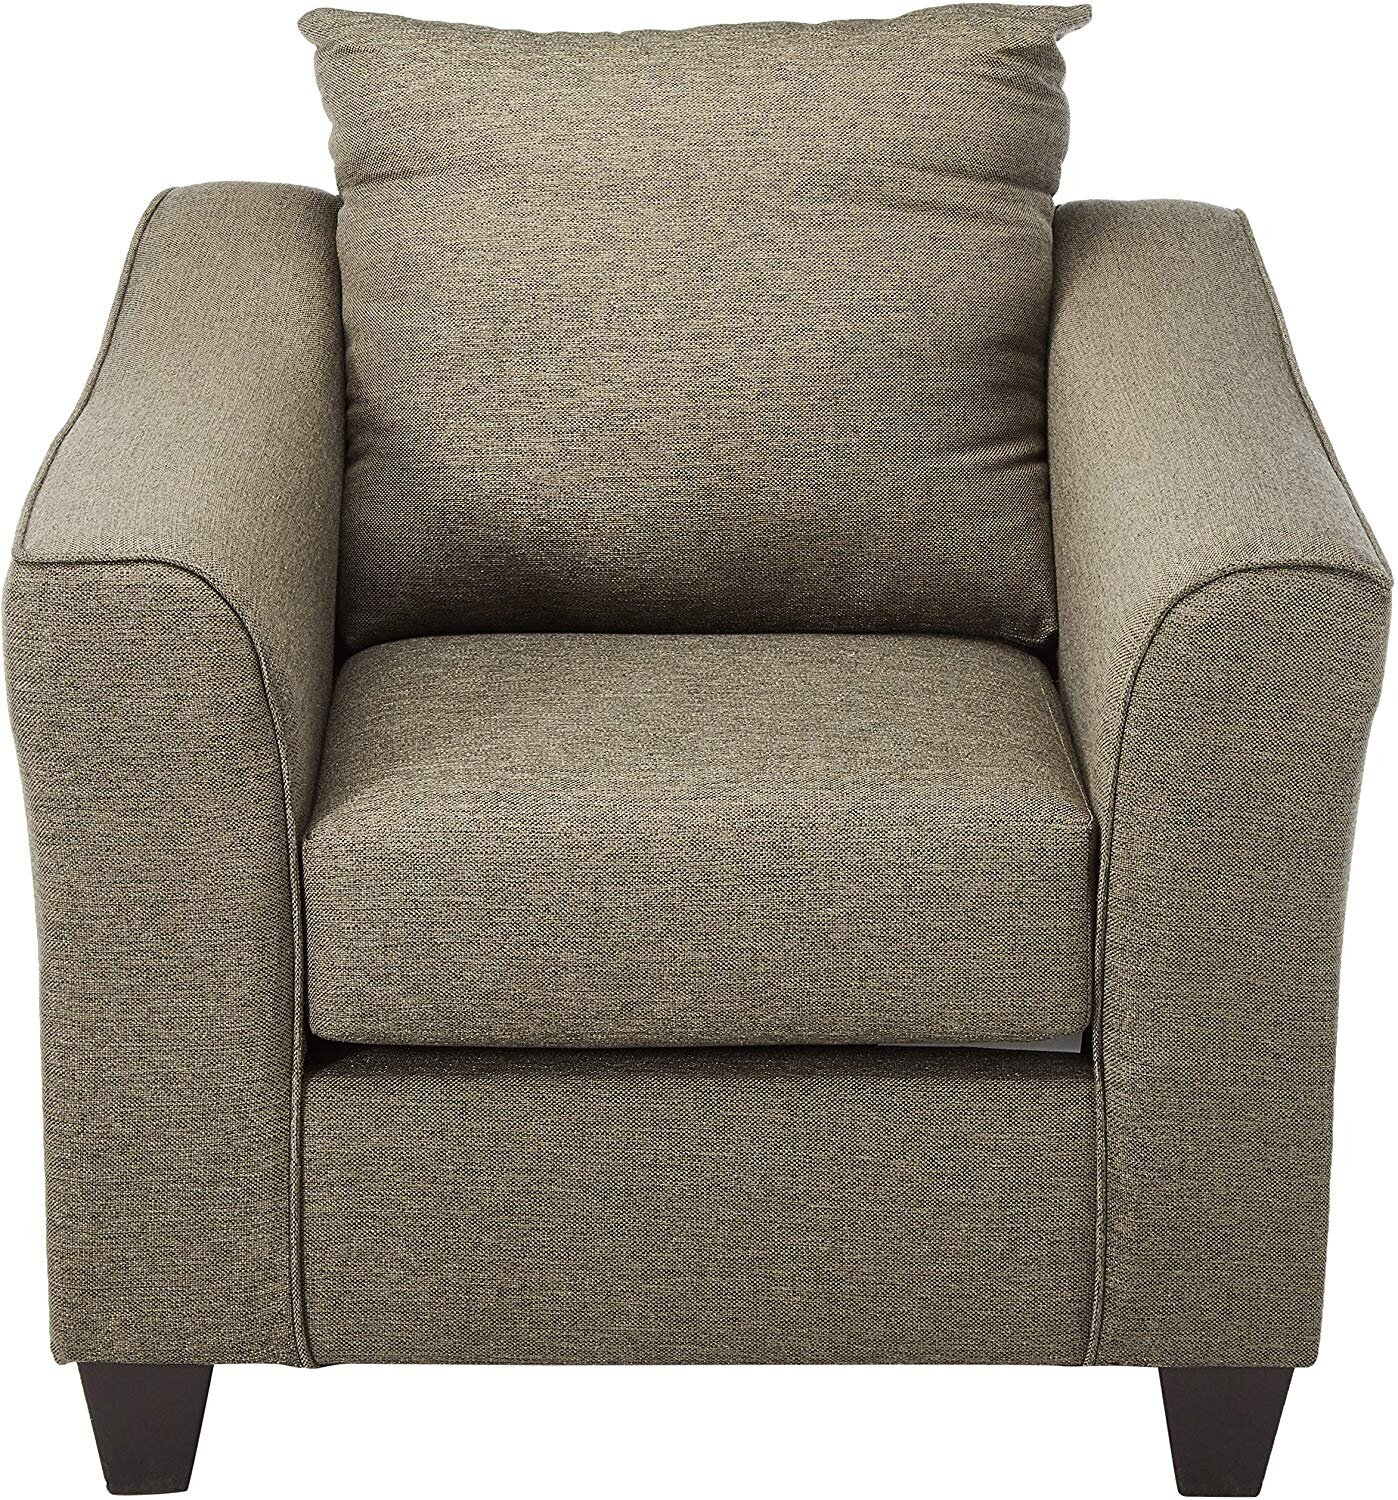 Pillow Top Arm Solid Accent Chairs You'Ll Love In 2021 | Wayfair Within Brookhhurst Avina Armchairs (View 14 of 15)